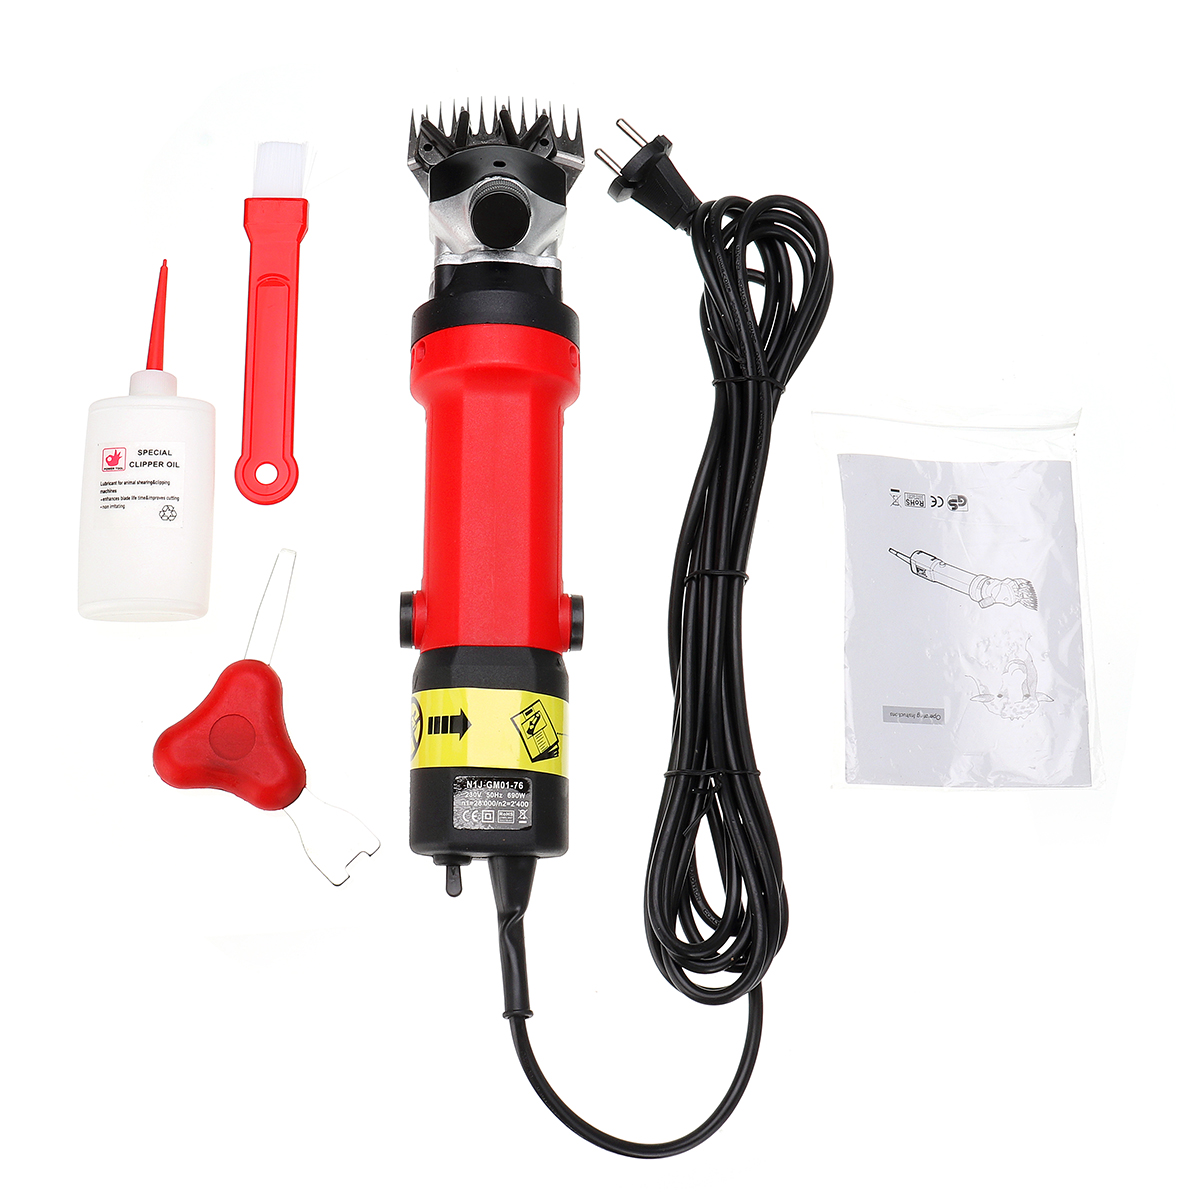 EU Plug 690W Electric Shearing Clipper Pet Sheep Shear Alpaca Goat Farm Wool Cut Trimmer 220V For Wool Electric Sheep Shearing new 680w sheep wool clipper electric sheep goats shearing clipper shears 1 set 13 straight tooth blade comb